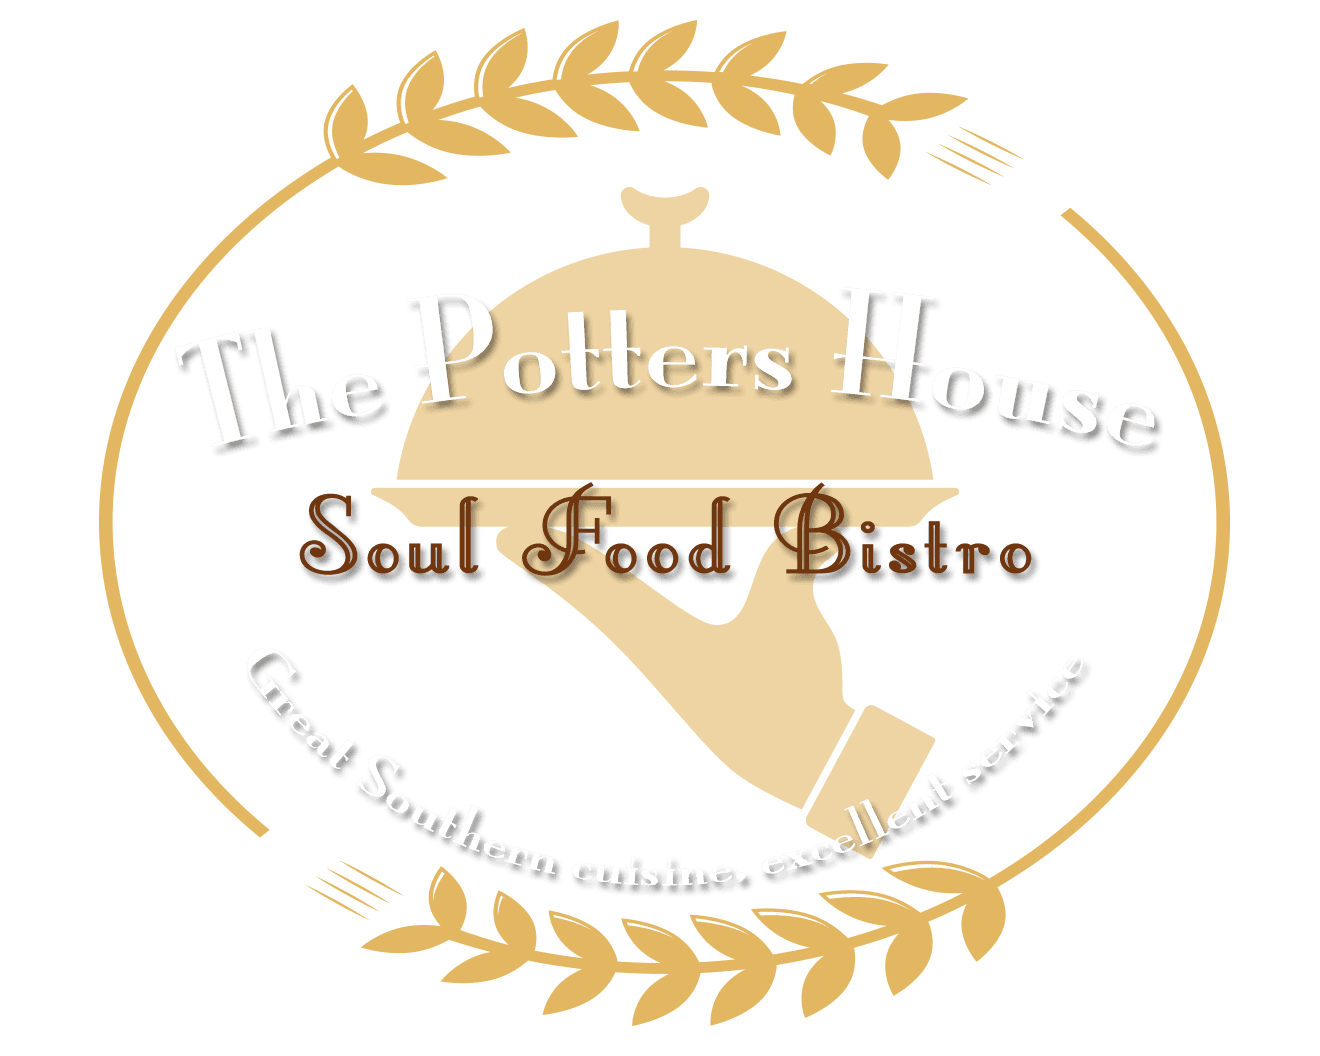 Great Southern Cuisine - The Potters House Soul Food Bistro